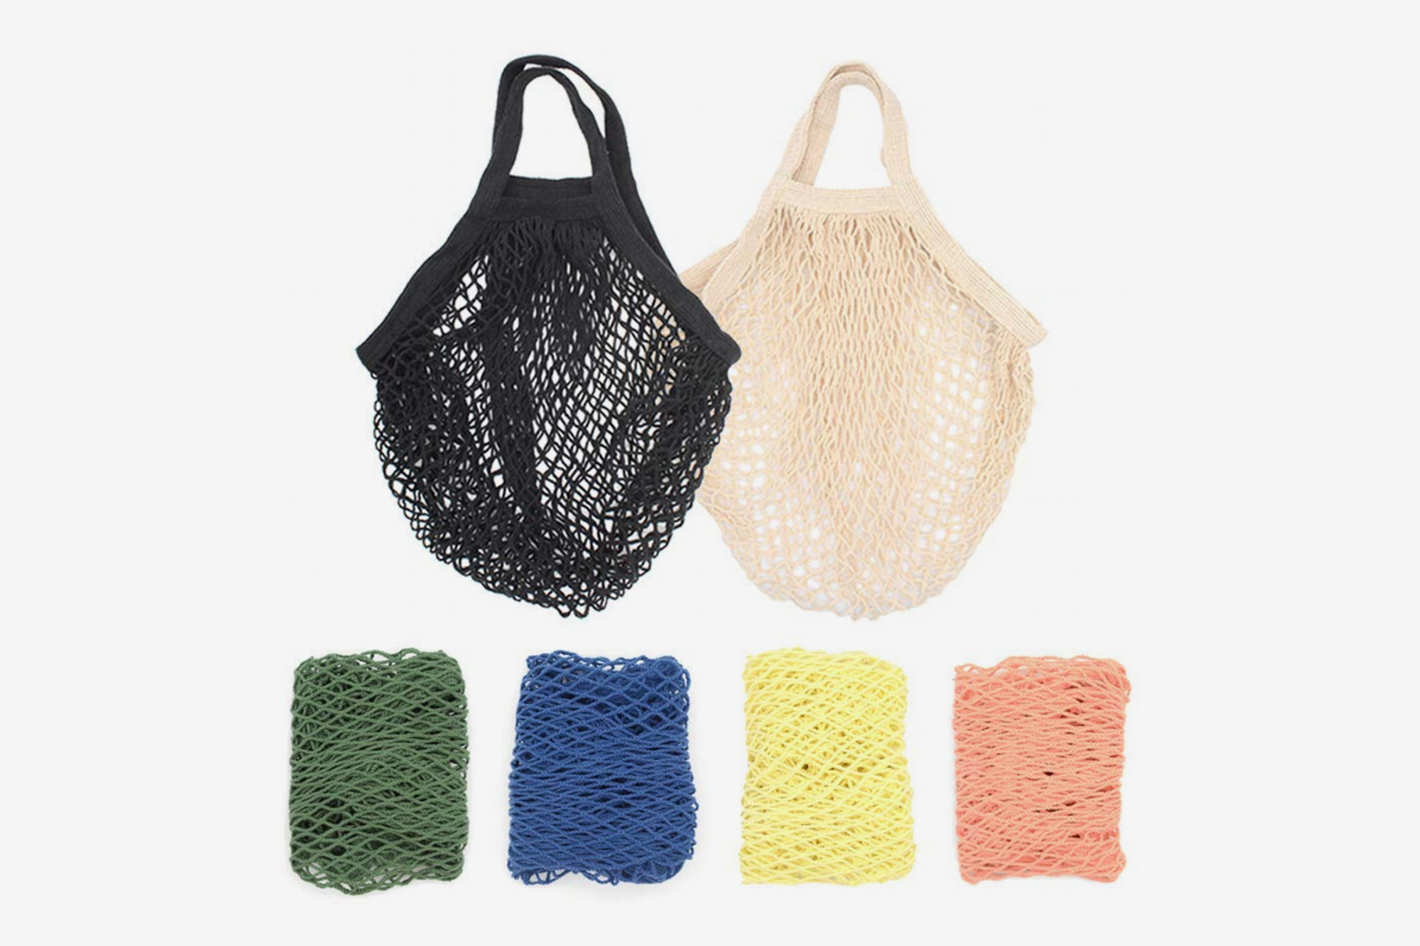 Stoncel Cotton Net Shopping Tote (6-pack)